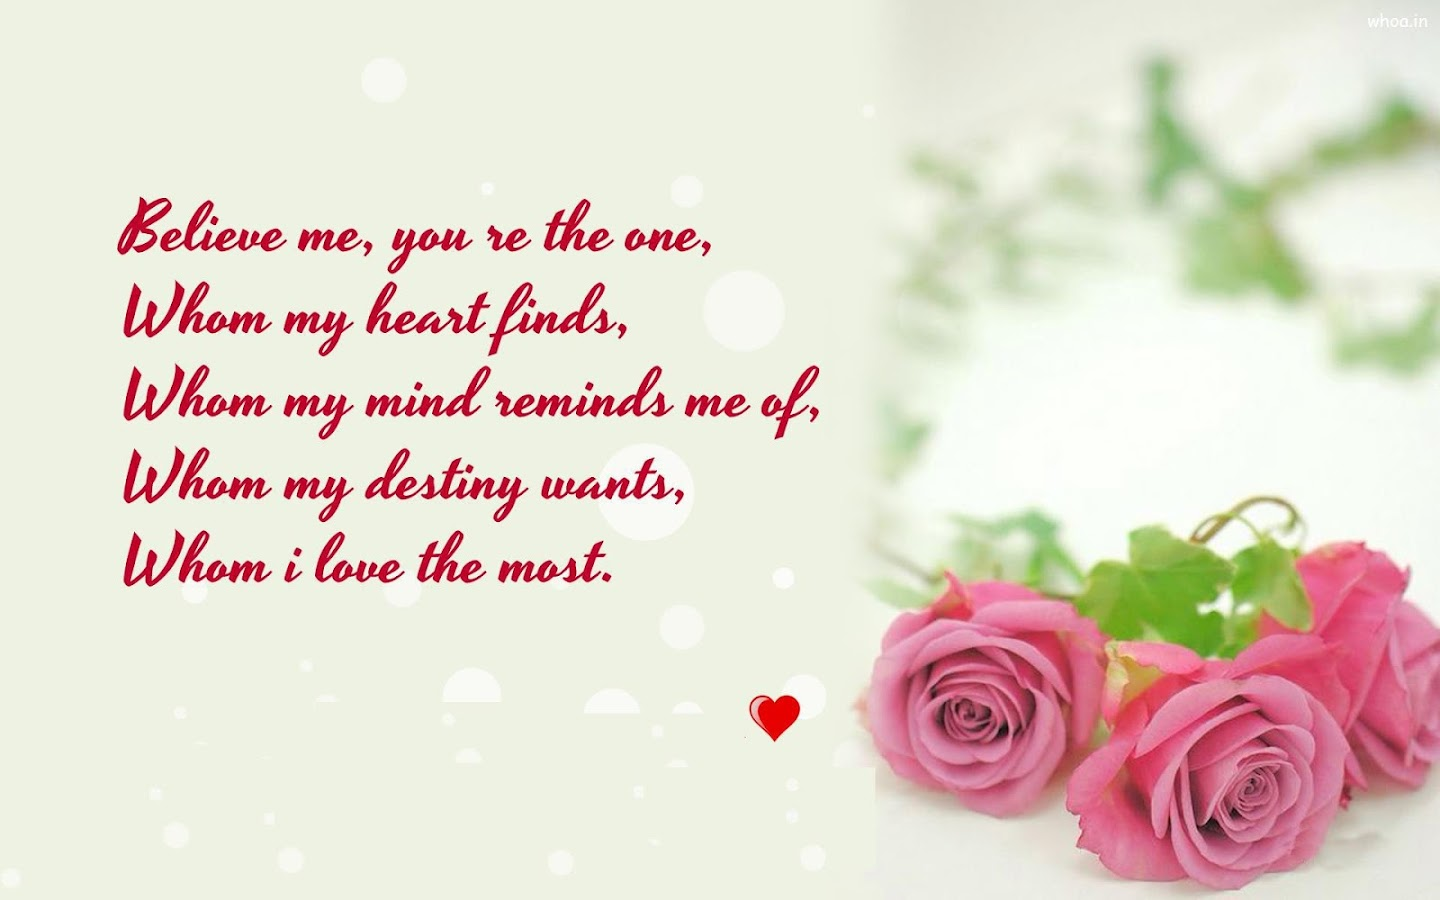 Love The One That Loves You Quotes Love Images With Quotes  Android Apps On Google Play